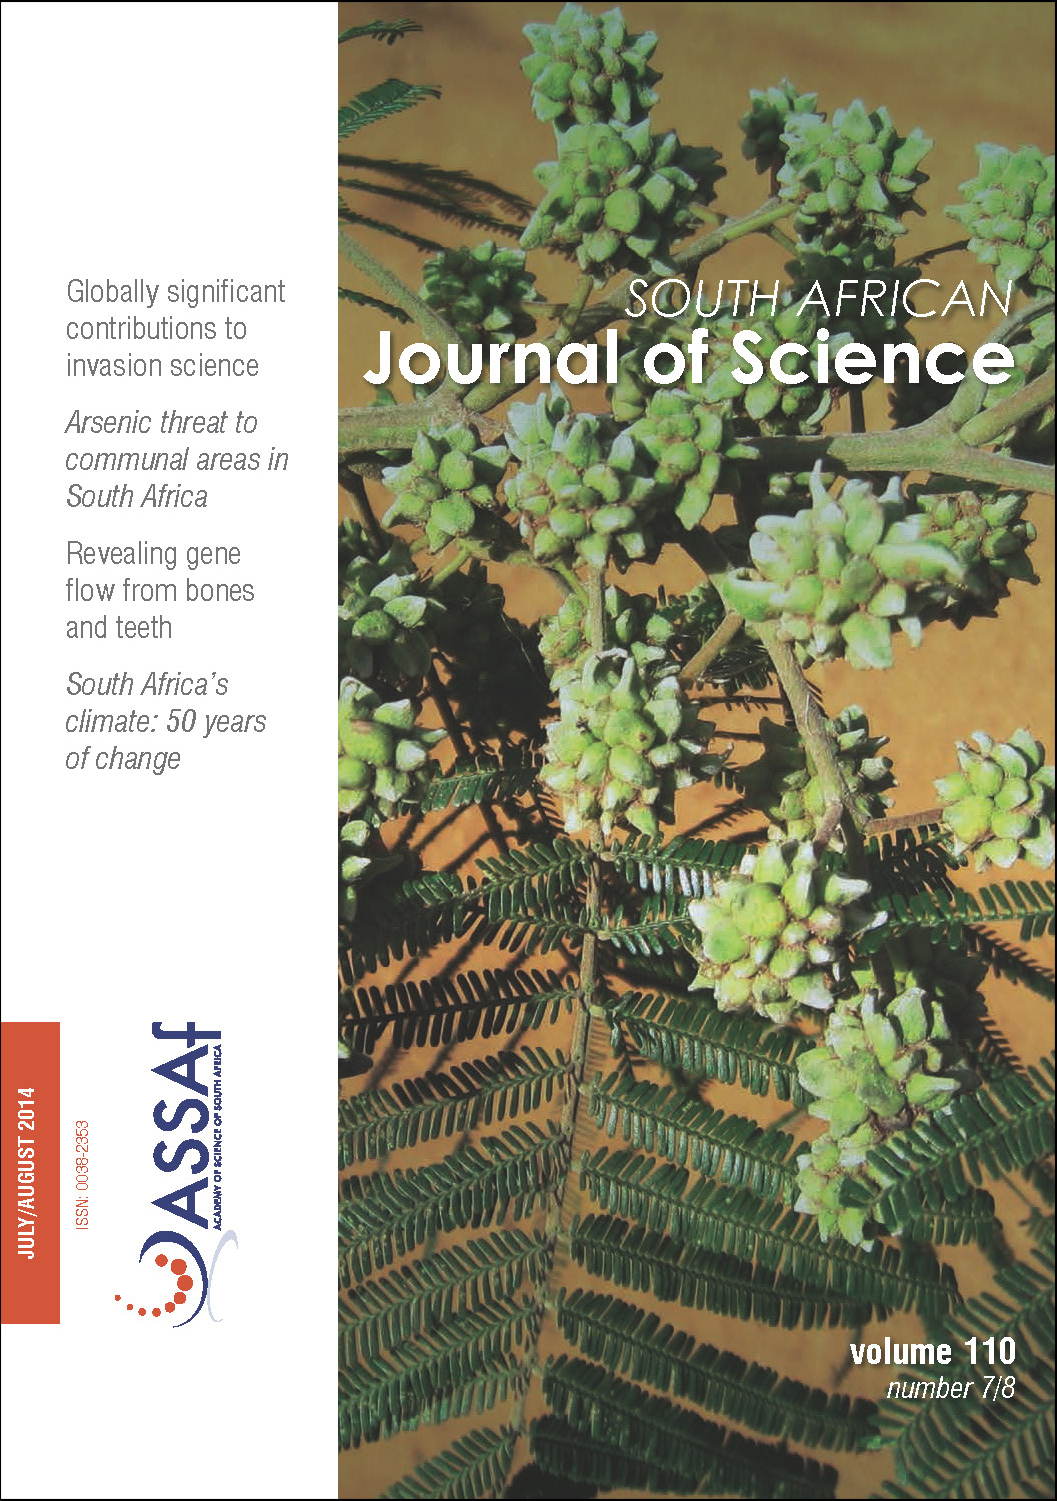 View Vol. 110 No. 7/8 (2014): South African Journal of Science